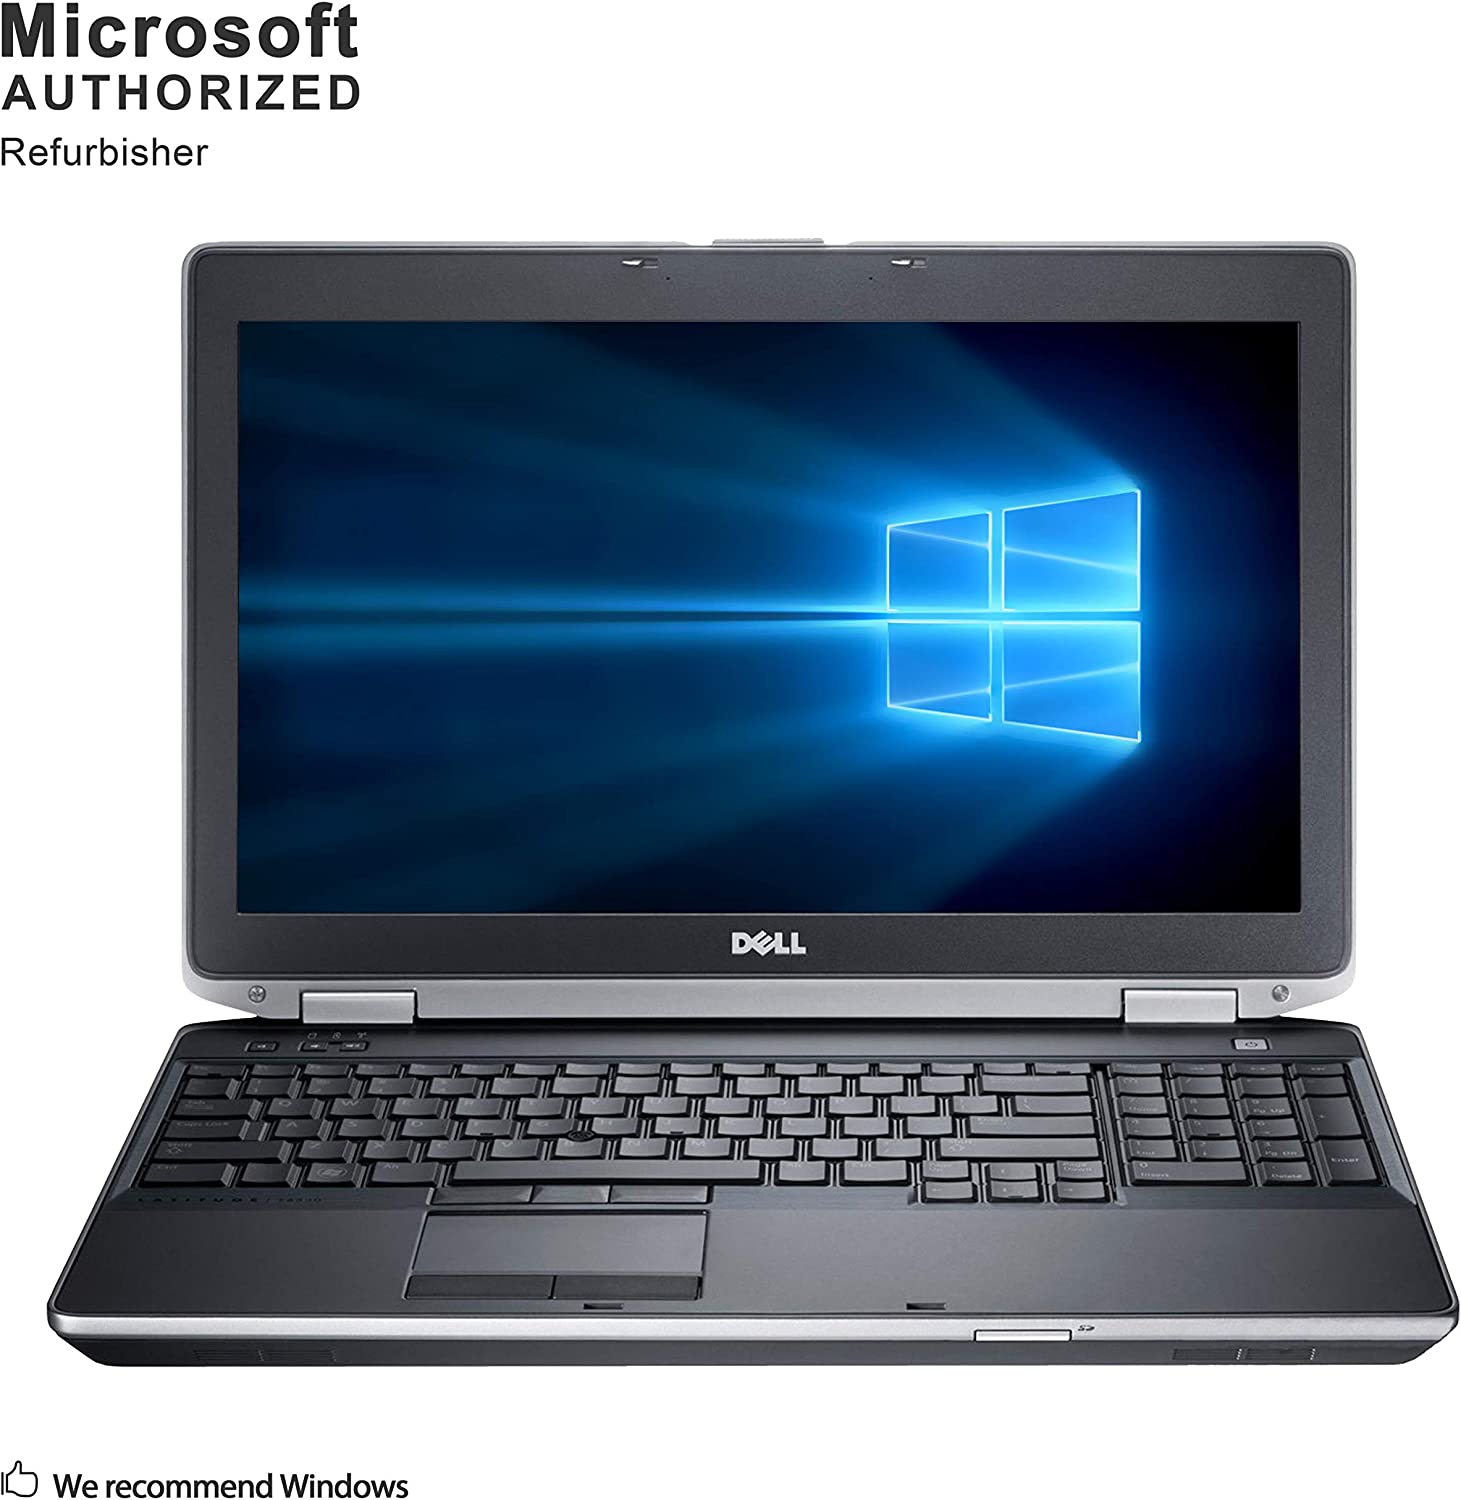 Dell Latitude E6530 15.6 Inch Business Laptop, Intel Core i5-3320M up to 3.3GHz, 8G DDR3, 500G, DVD, WiFi, VGA, HDMI, Win 10 Pro 64 Bit Multi-Language Support English/French/Spanish(Renewed)